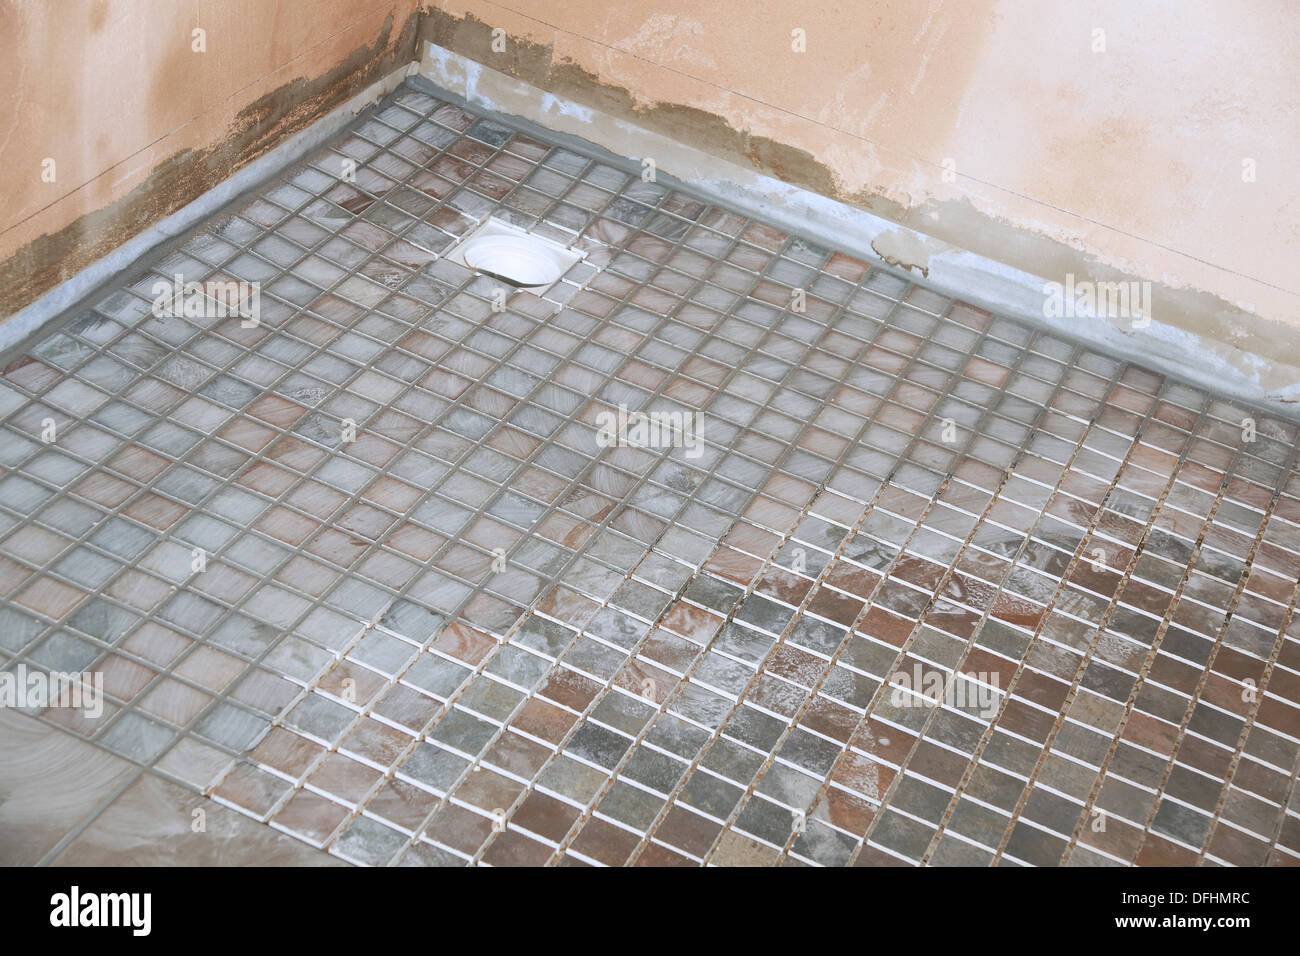 Non slip tiles used for the flooring in a wet room shower bathroom